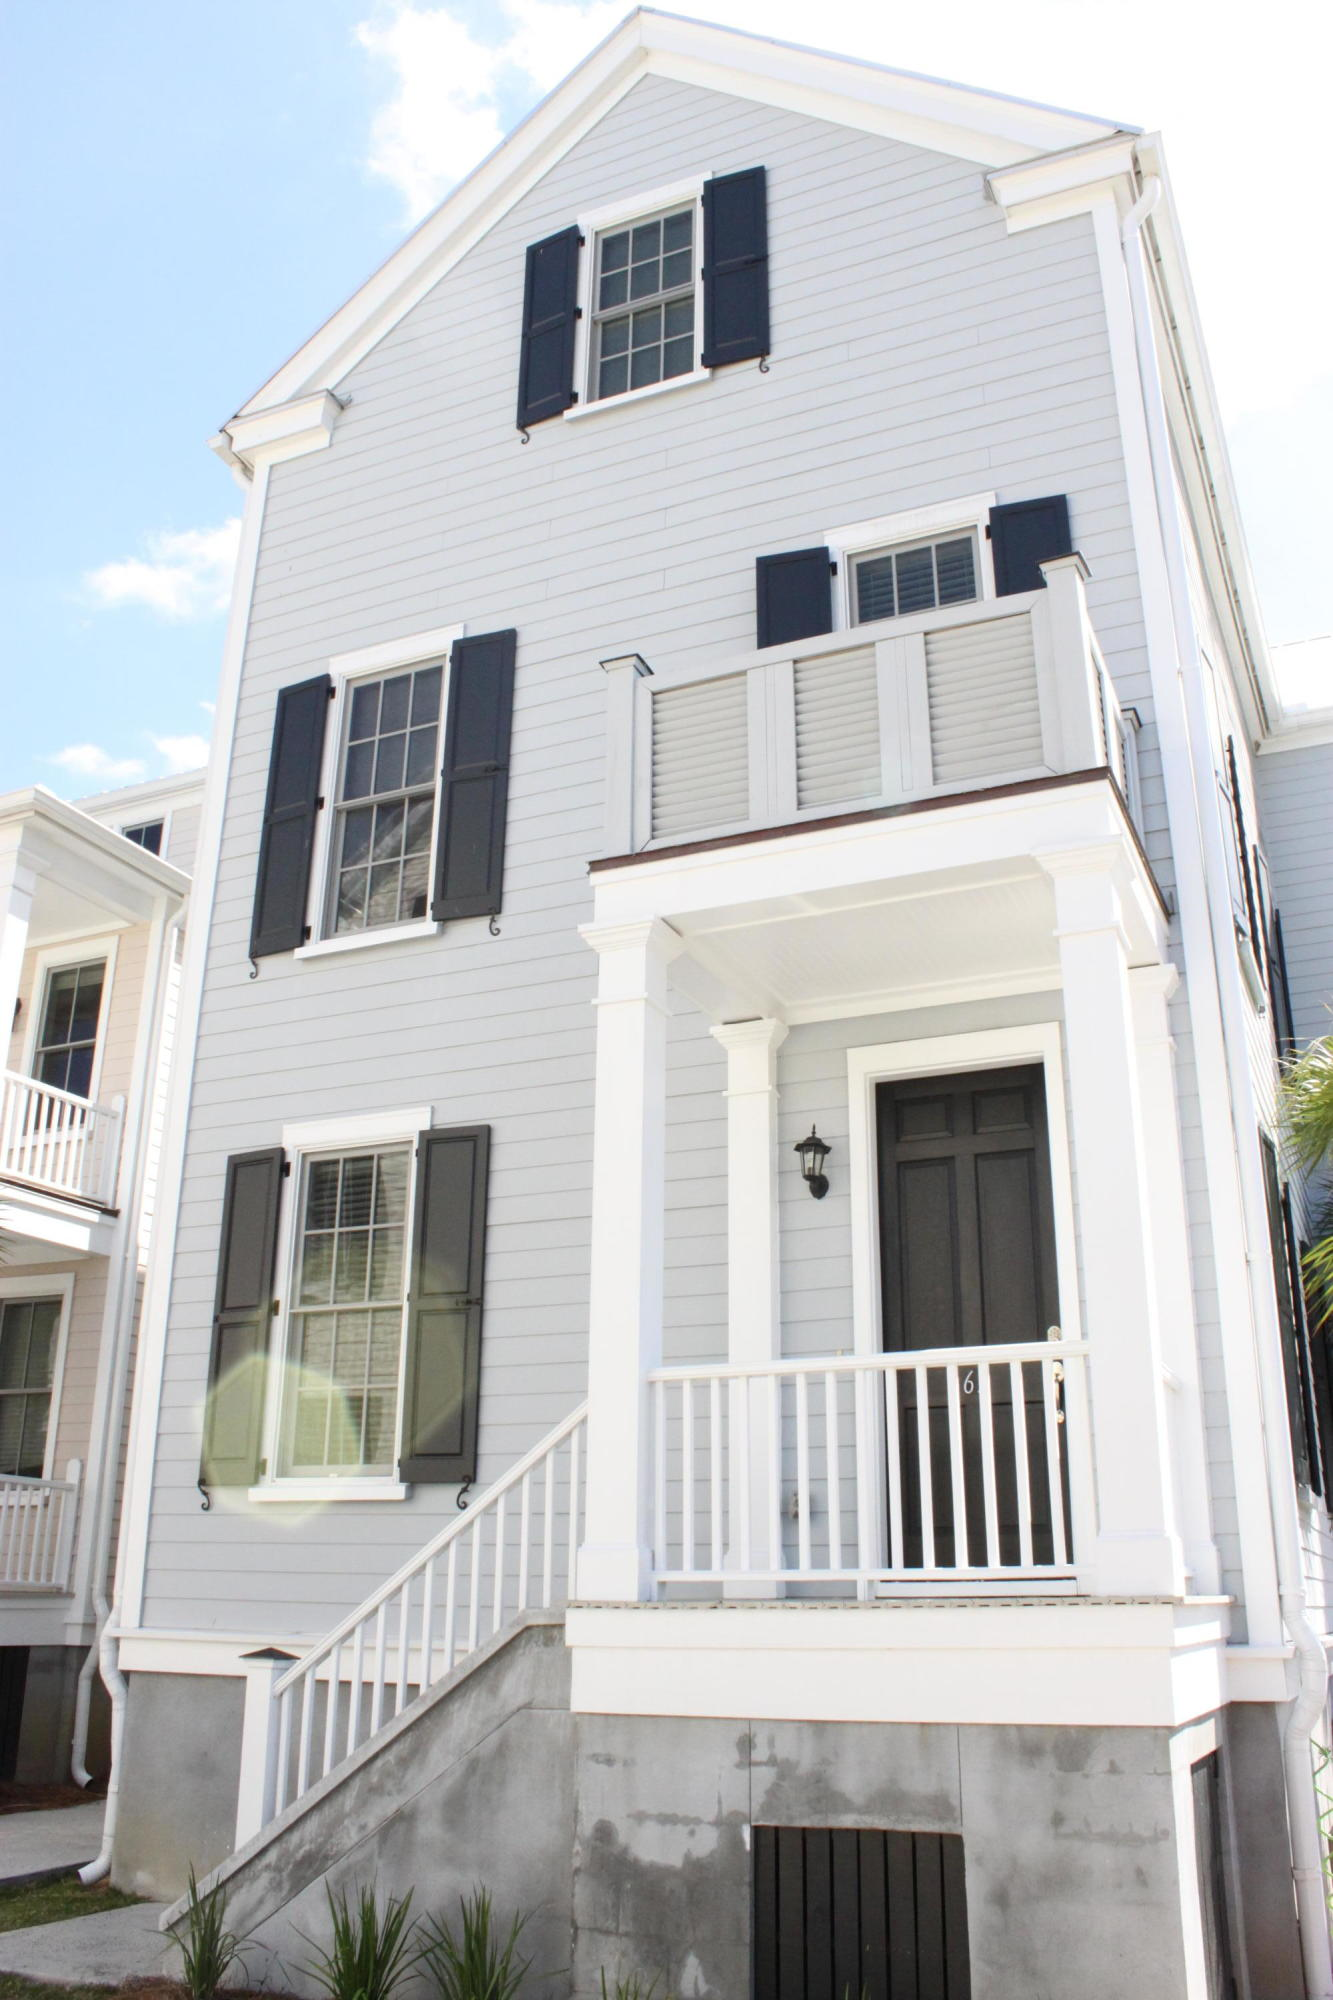 Home for sale 61 Dereef Court, Morris Square, Downtown Charleston, SC